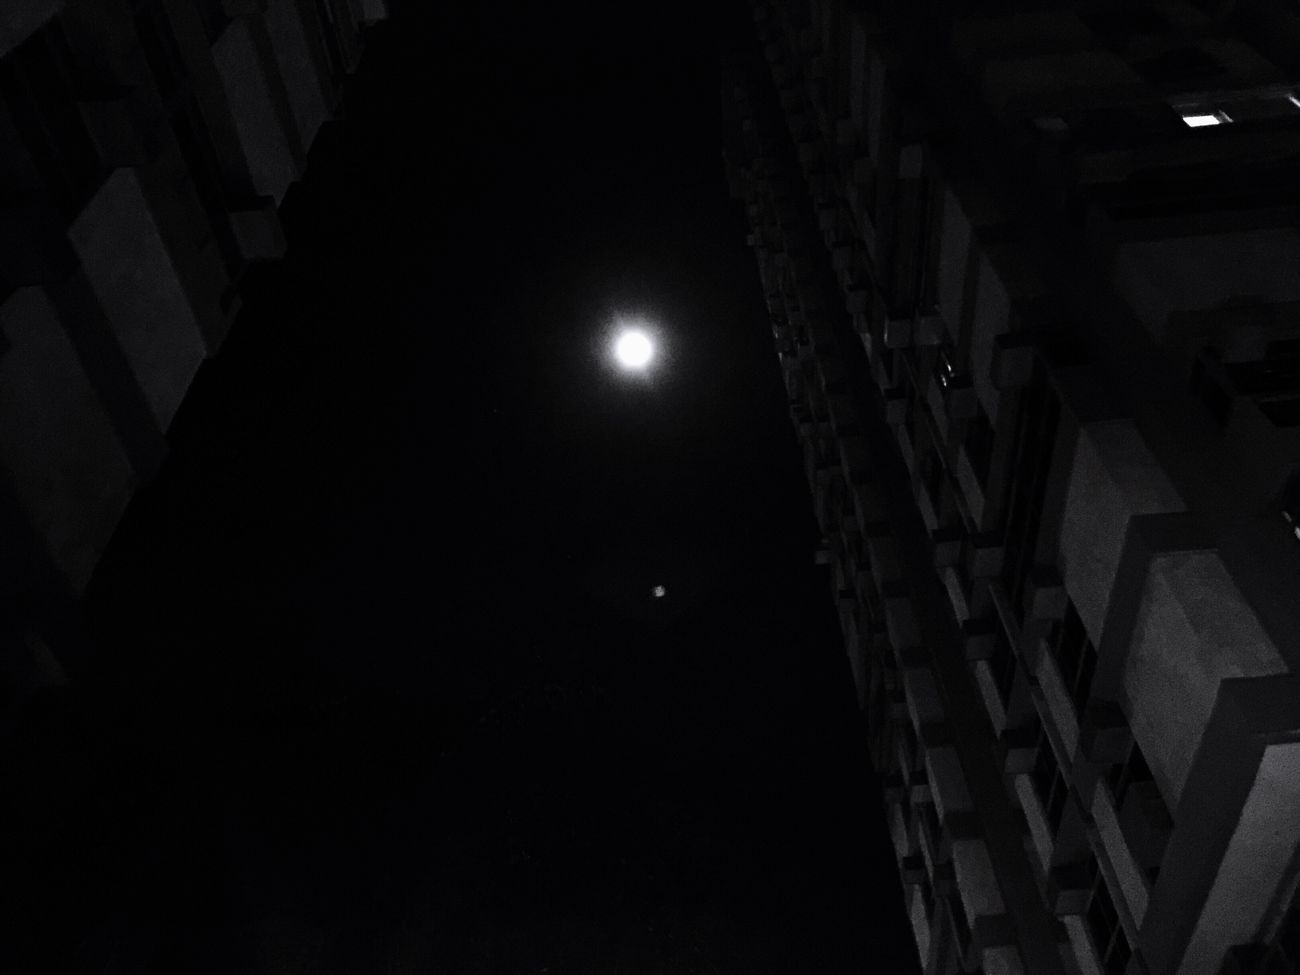 There's always the moonglow over someone 🌕 Night Illuminated Moon Architecture For My Friends That Connect IPhoneography My City Is Beautiful My Babes New